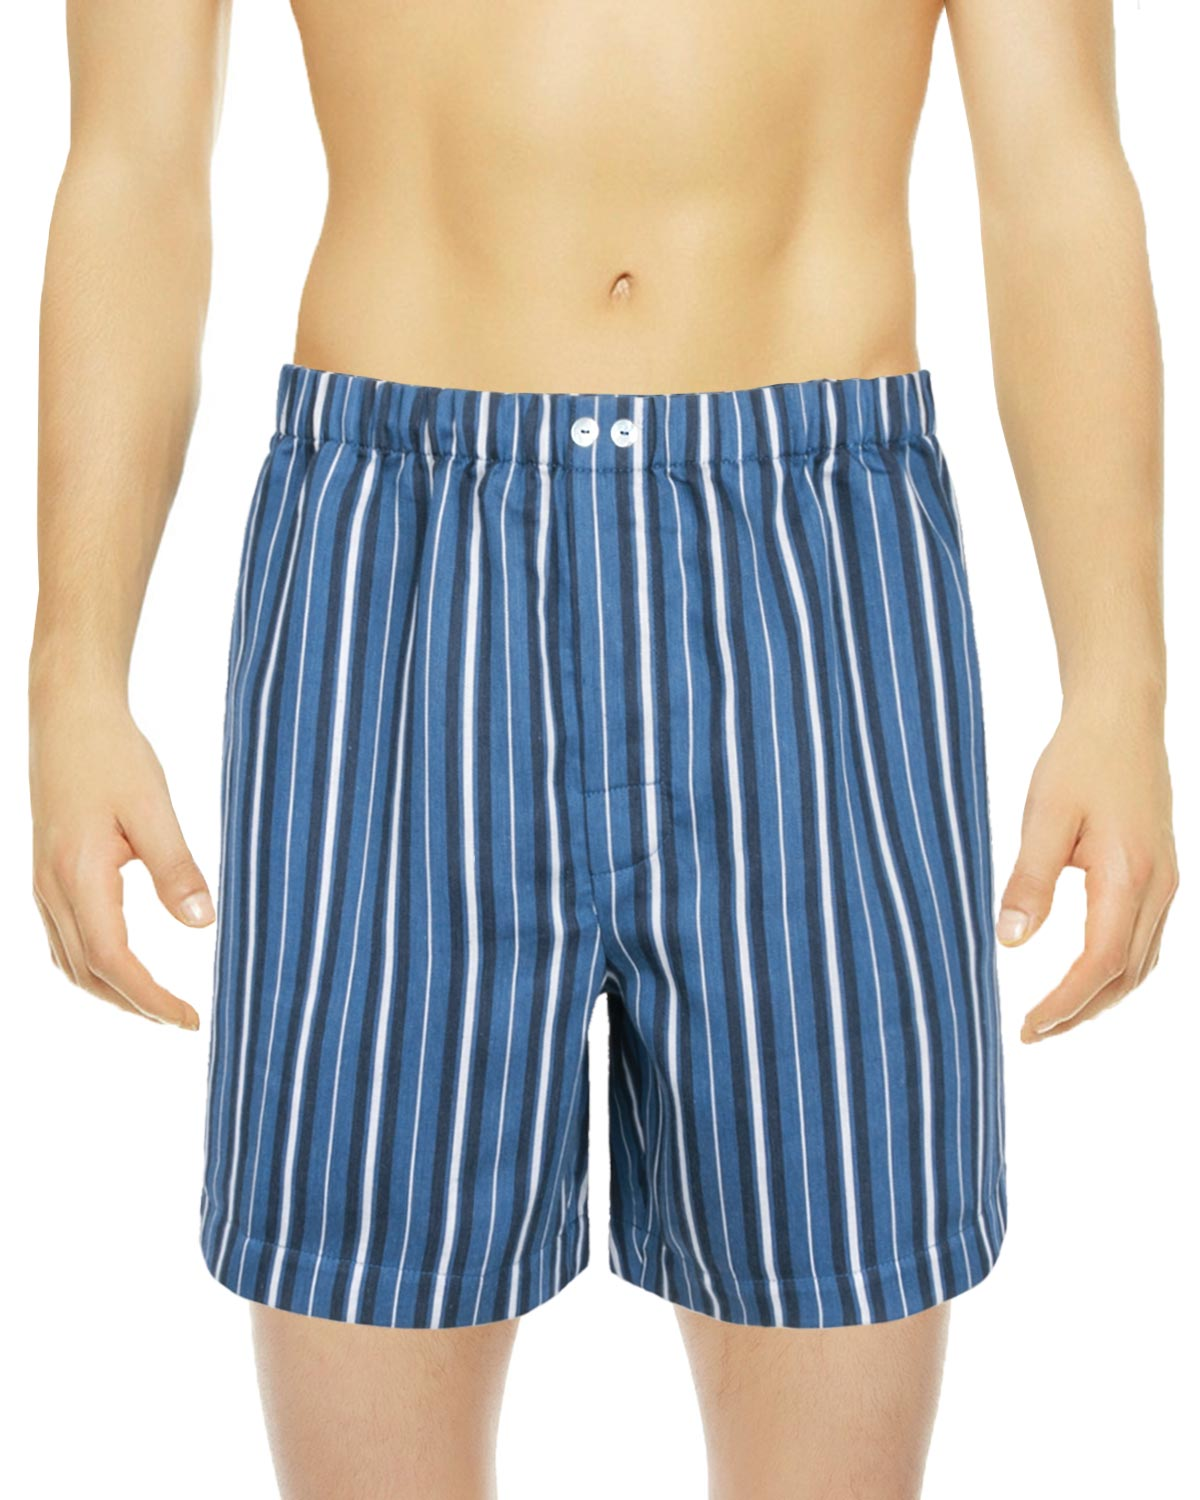 Charm Blue Striped Boxer Shorts, Encanto Blend of Sateen Linen Cotton